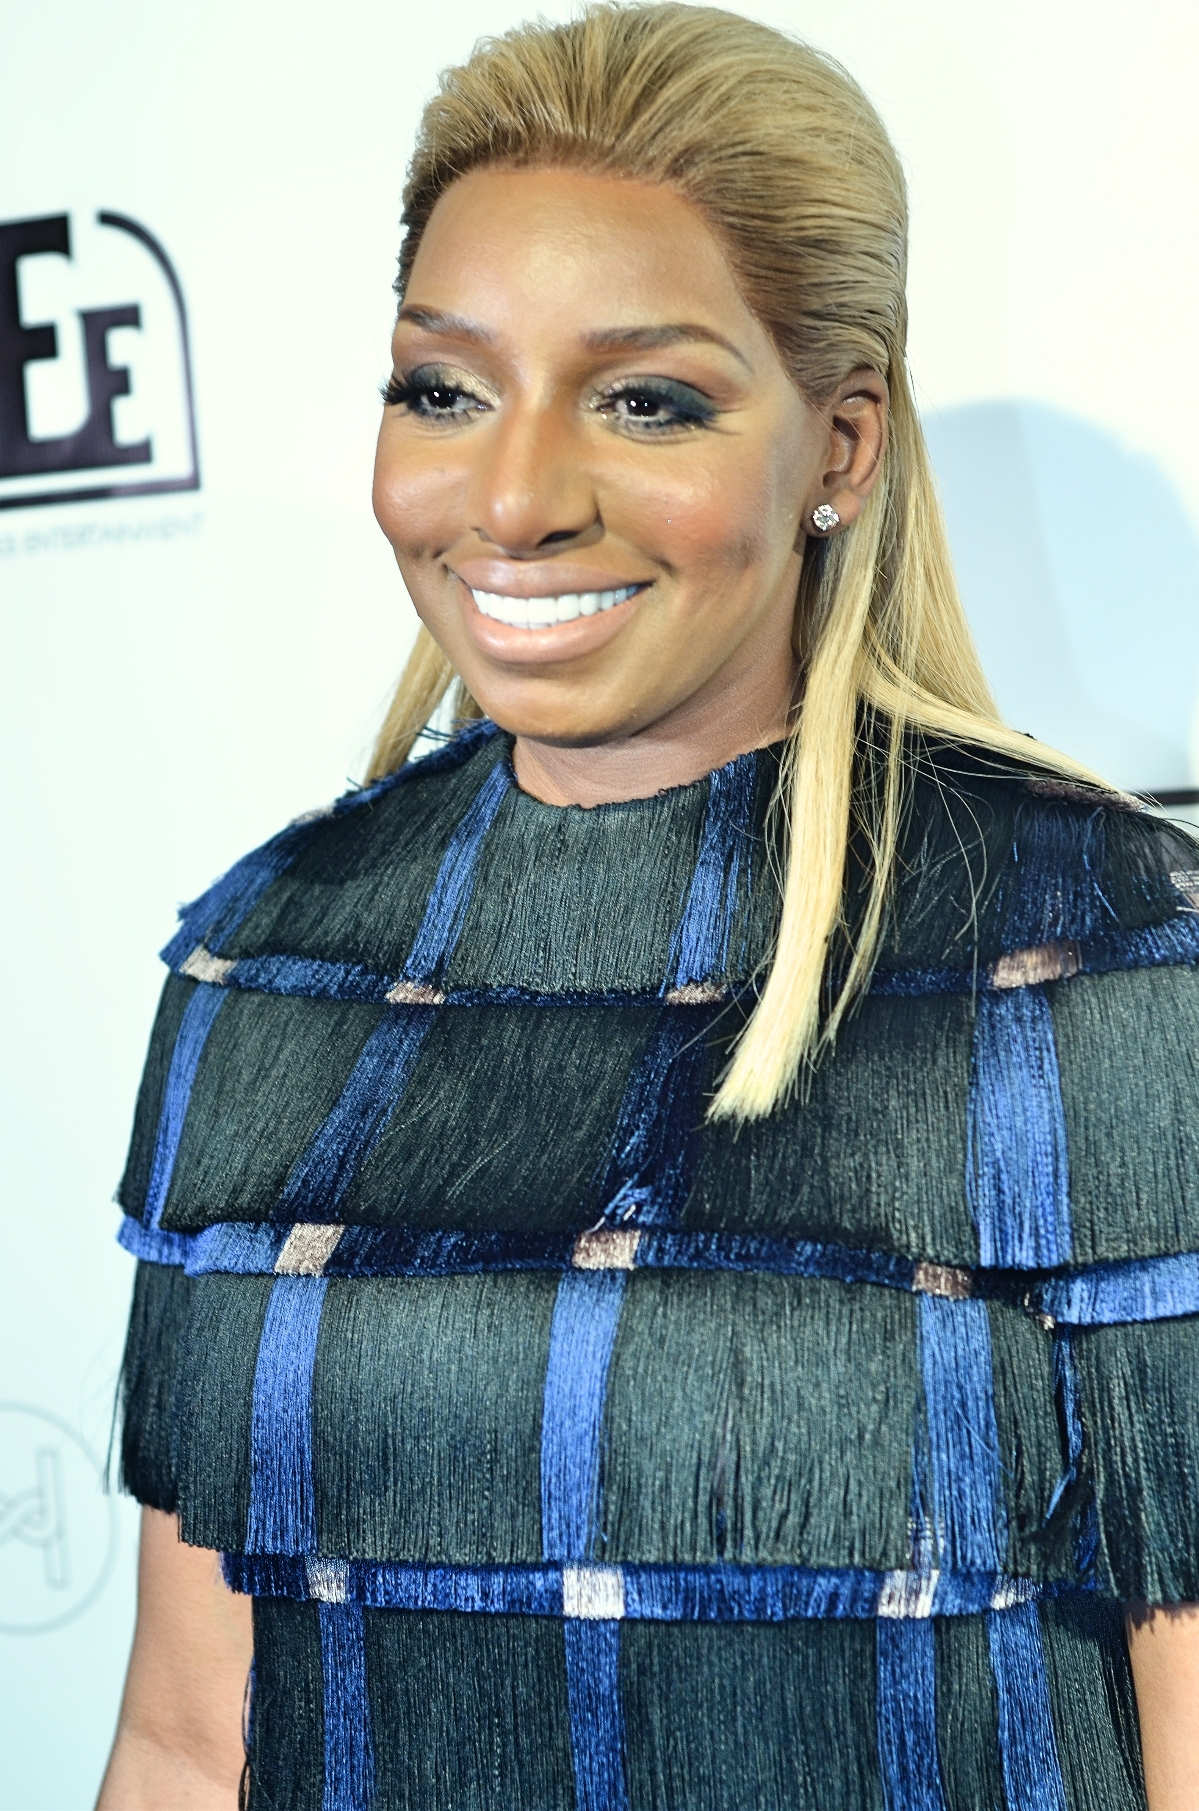 08/30/2015 - Nene Leakes - Diddy and Friends #FINNAGETLOOSE MTV VMA After Party - Supper Club at the Vogue Theater - Hollywood, CA, USA - Keywords: FINNAGETLOOSE, MTV Video Music Awards, VMA, red carpet, After Party, arrivals, attending, Supper Club, vertical, Art Culture and Entertainment Orientation: Portrait Face Count: 1 - False - Photo Credit: Sir Jones / PRPhotos.com - Contact (1-866-551-7827) - Portrait Face Count: 1